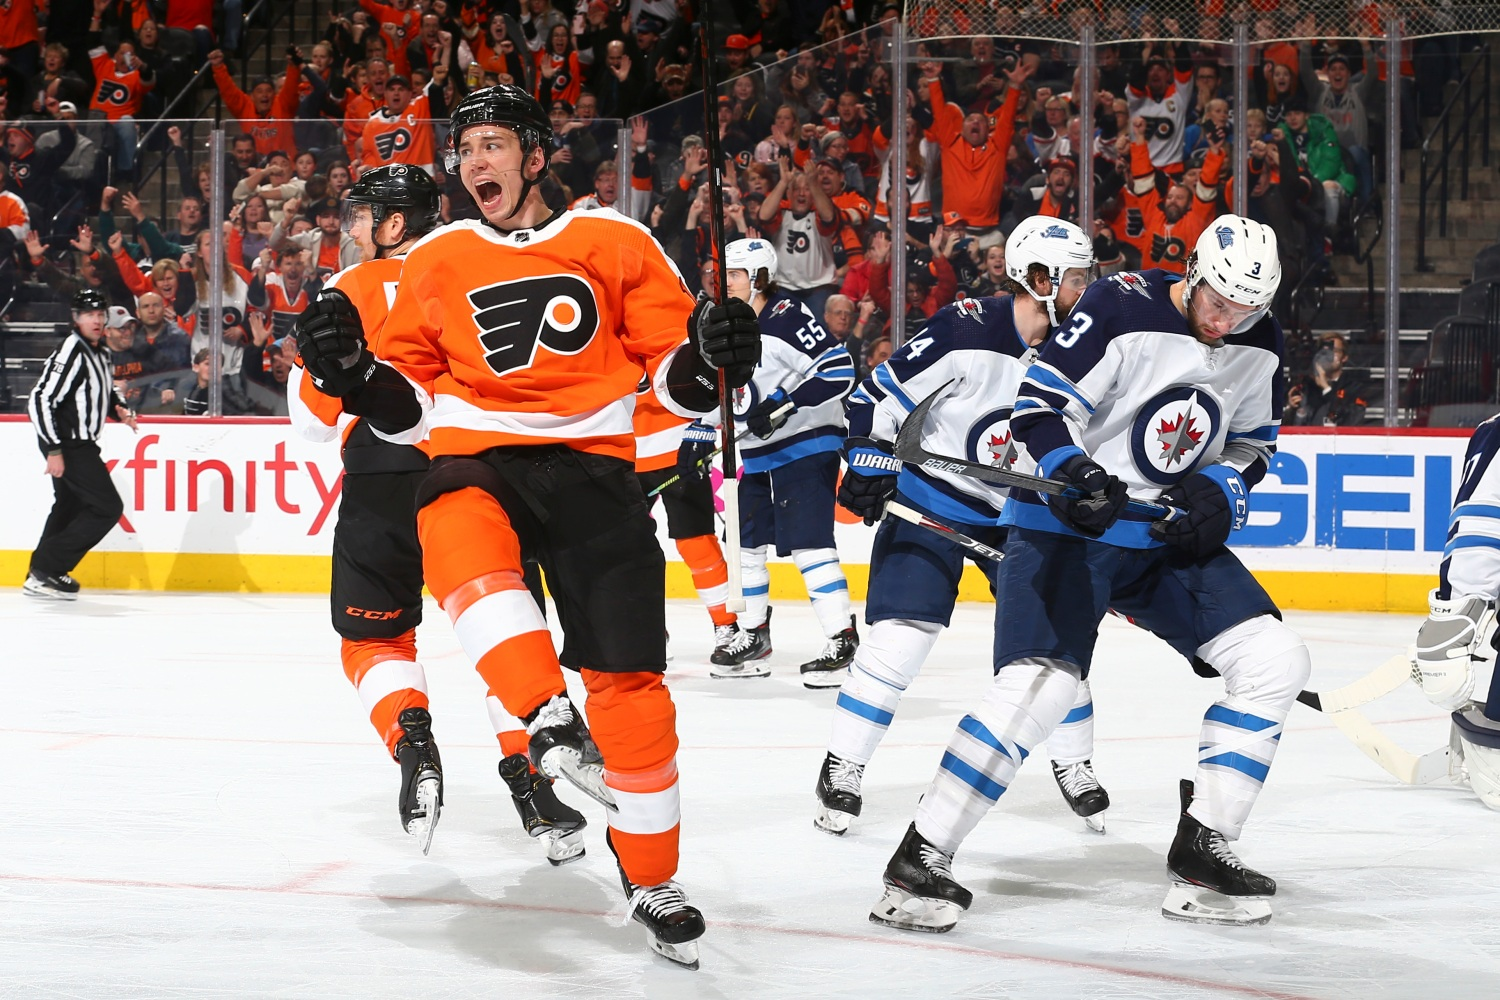 Scott Laughton Scores Twice, 3rd Line Shines As Streaking Flyers Beat Jets For 3rd Straight Win